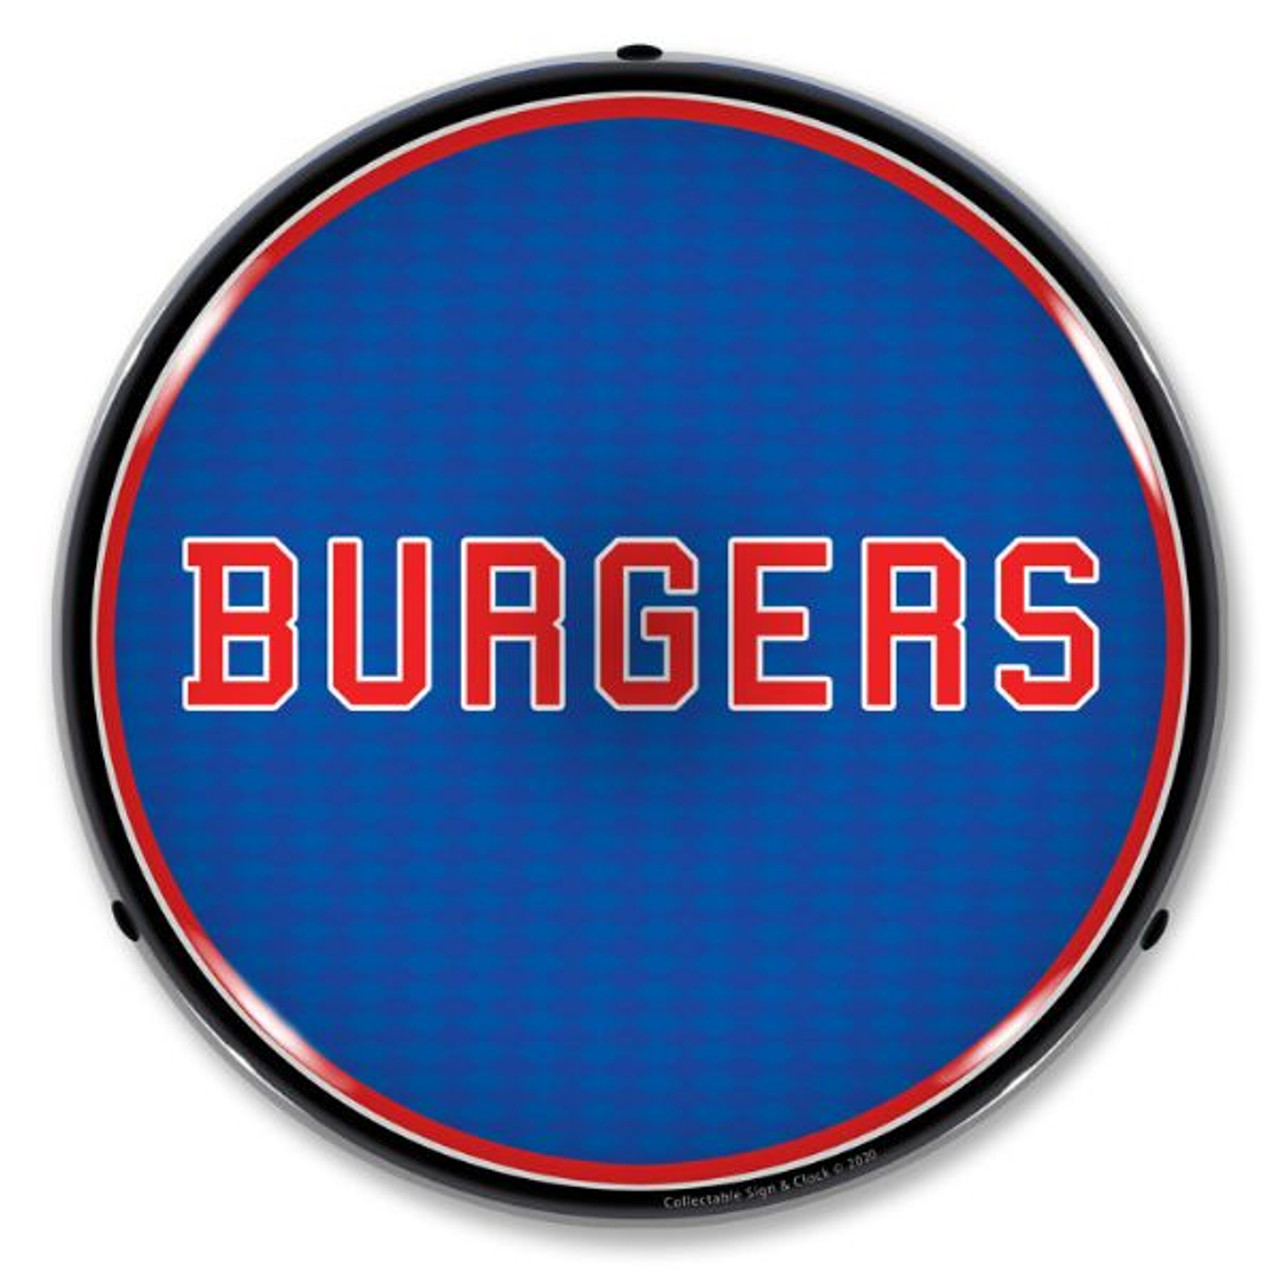 Burgers LED Lighted Business Sign 14 x 14 Inches